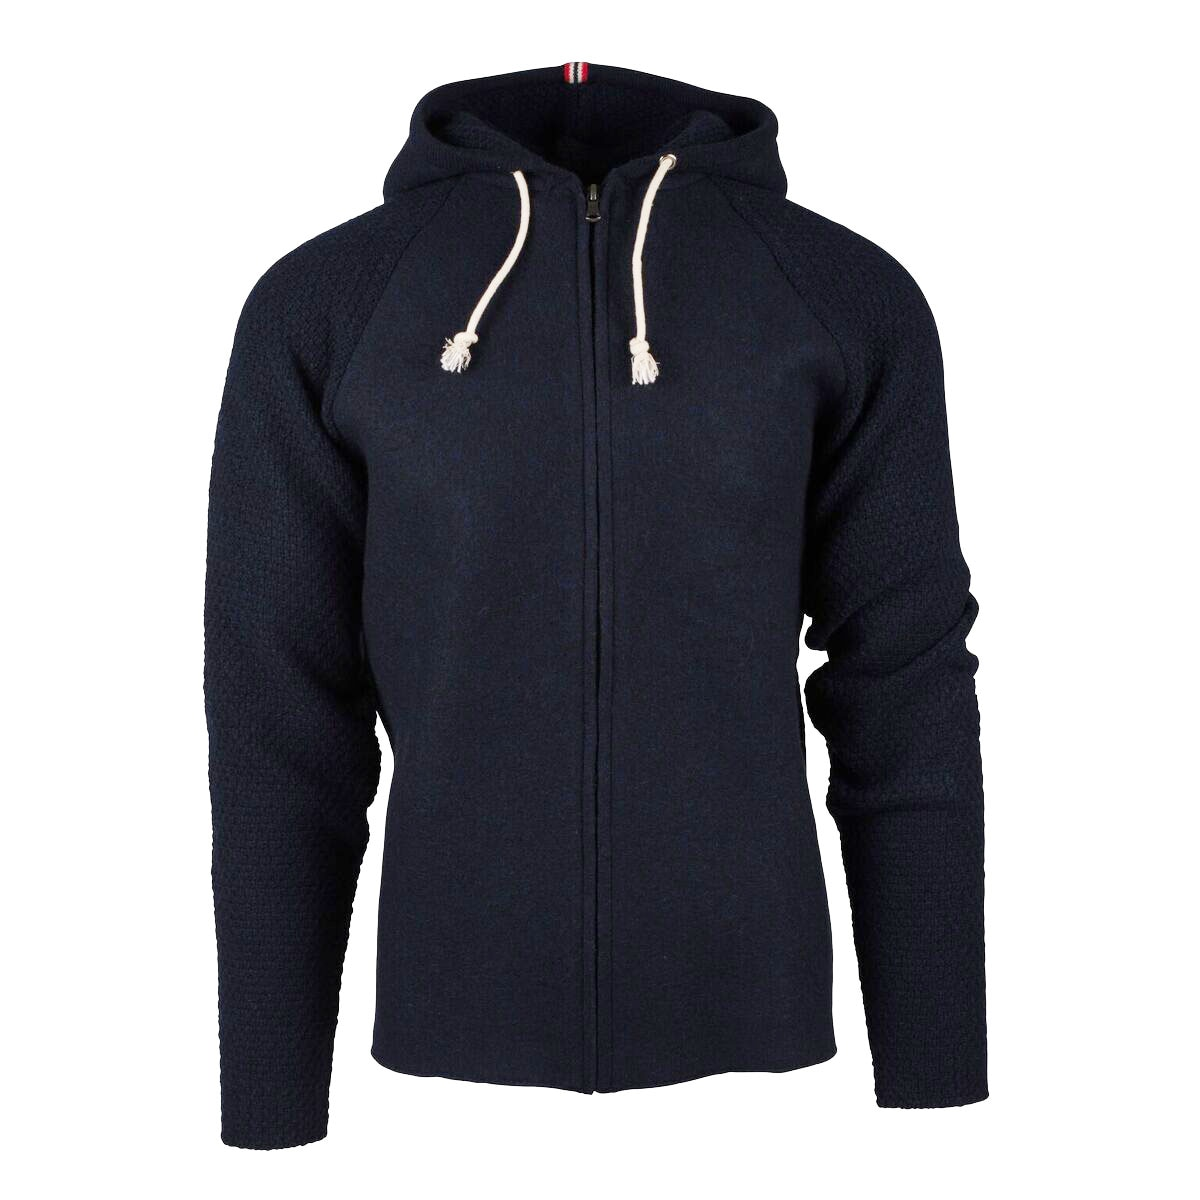 Amundsen Sports Boiled Hoodie Jacket, M's